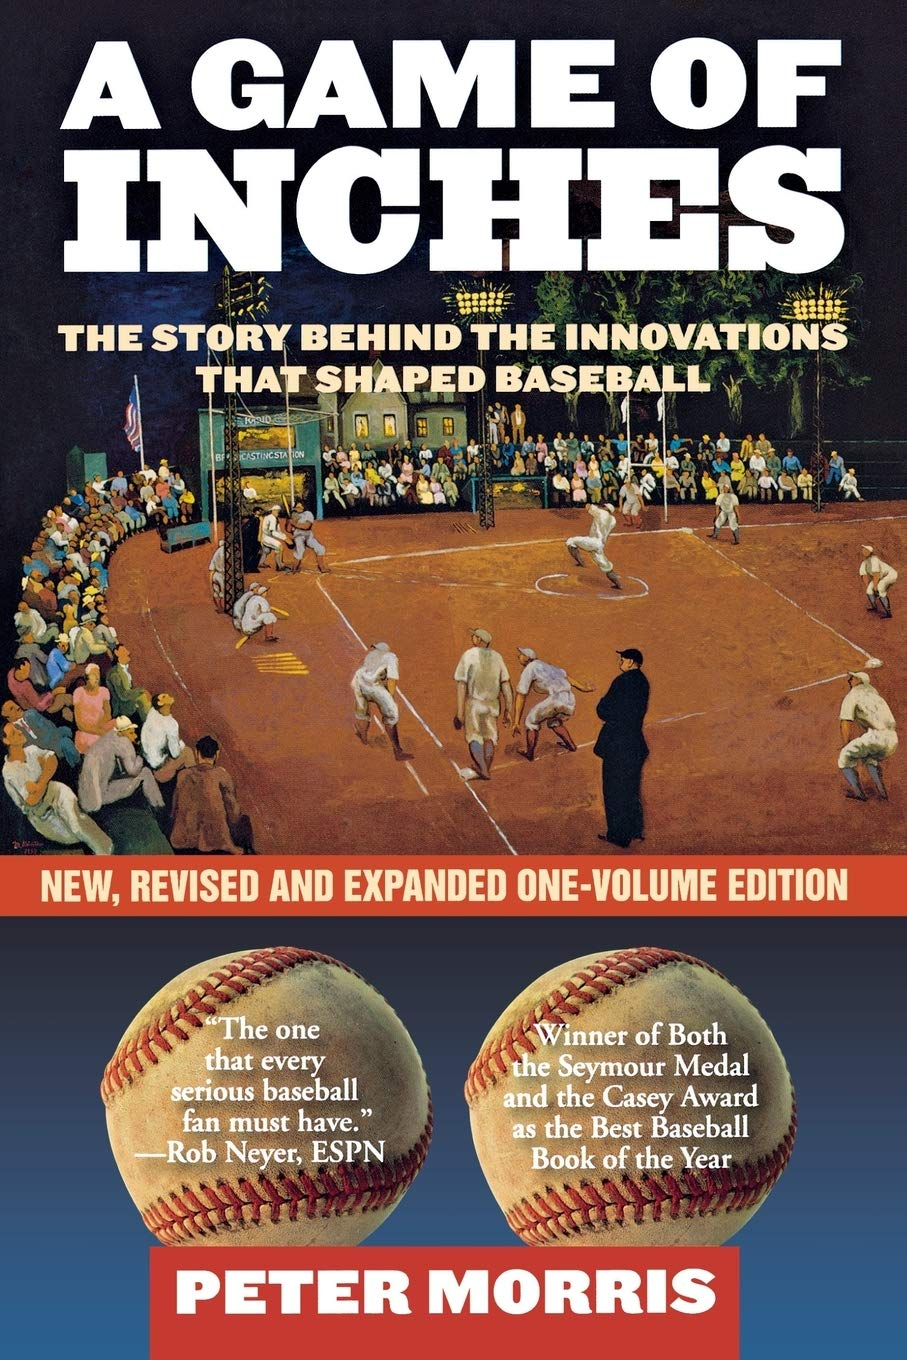 A Game of Inches: The Stories Behind the Innovations That Shaped Baseball